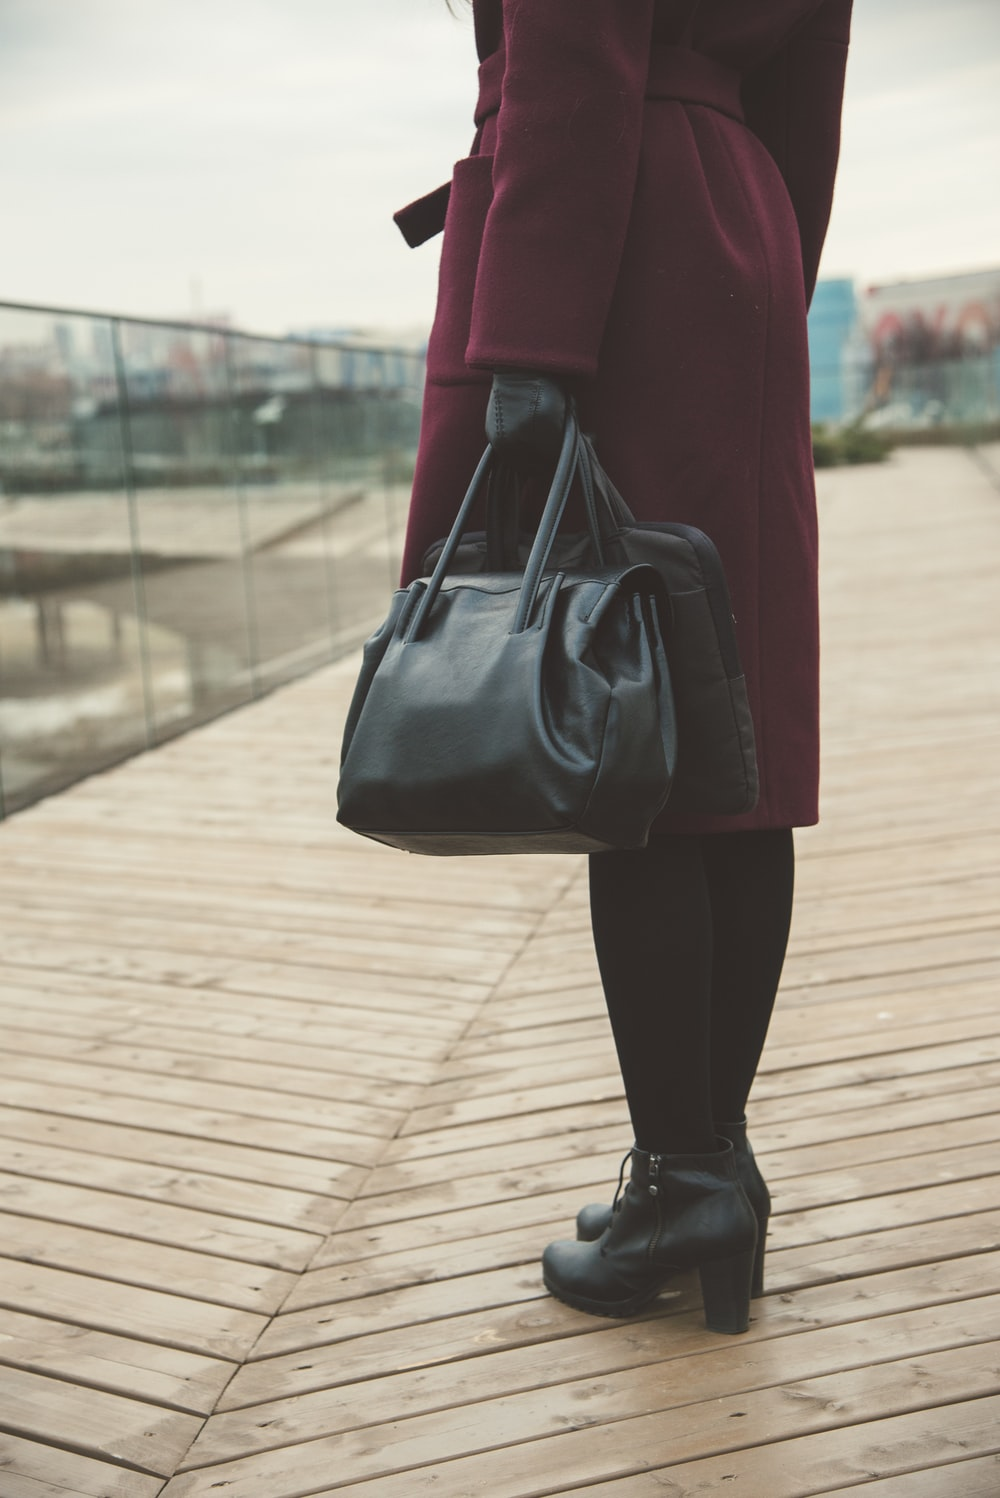 woman standing while holding black bags